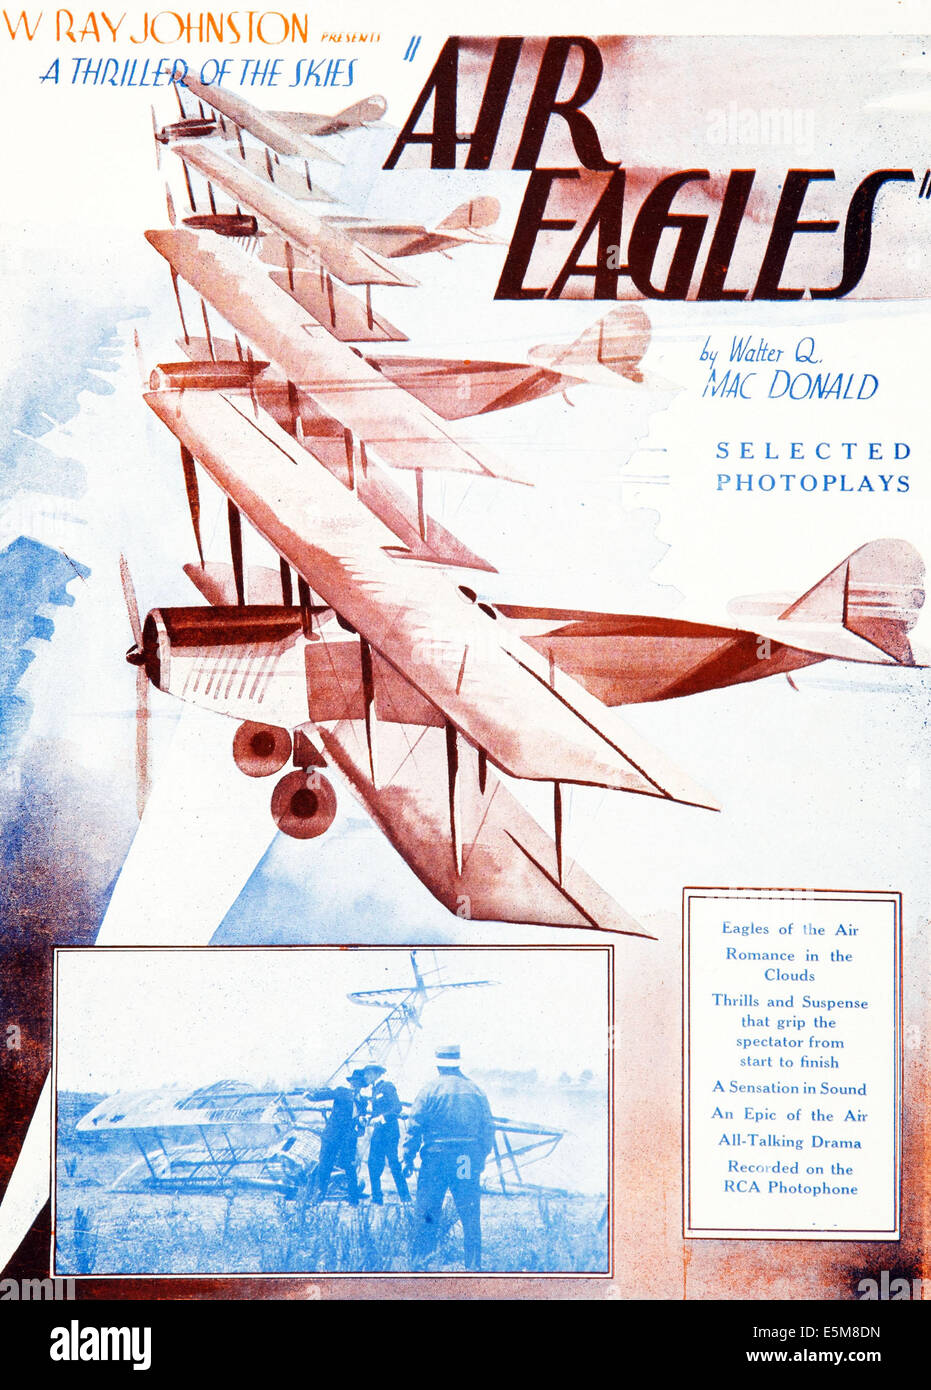 AIR EAGLES, poster art, 1931. - Stock Image